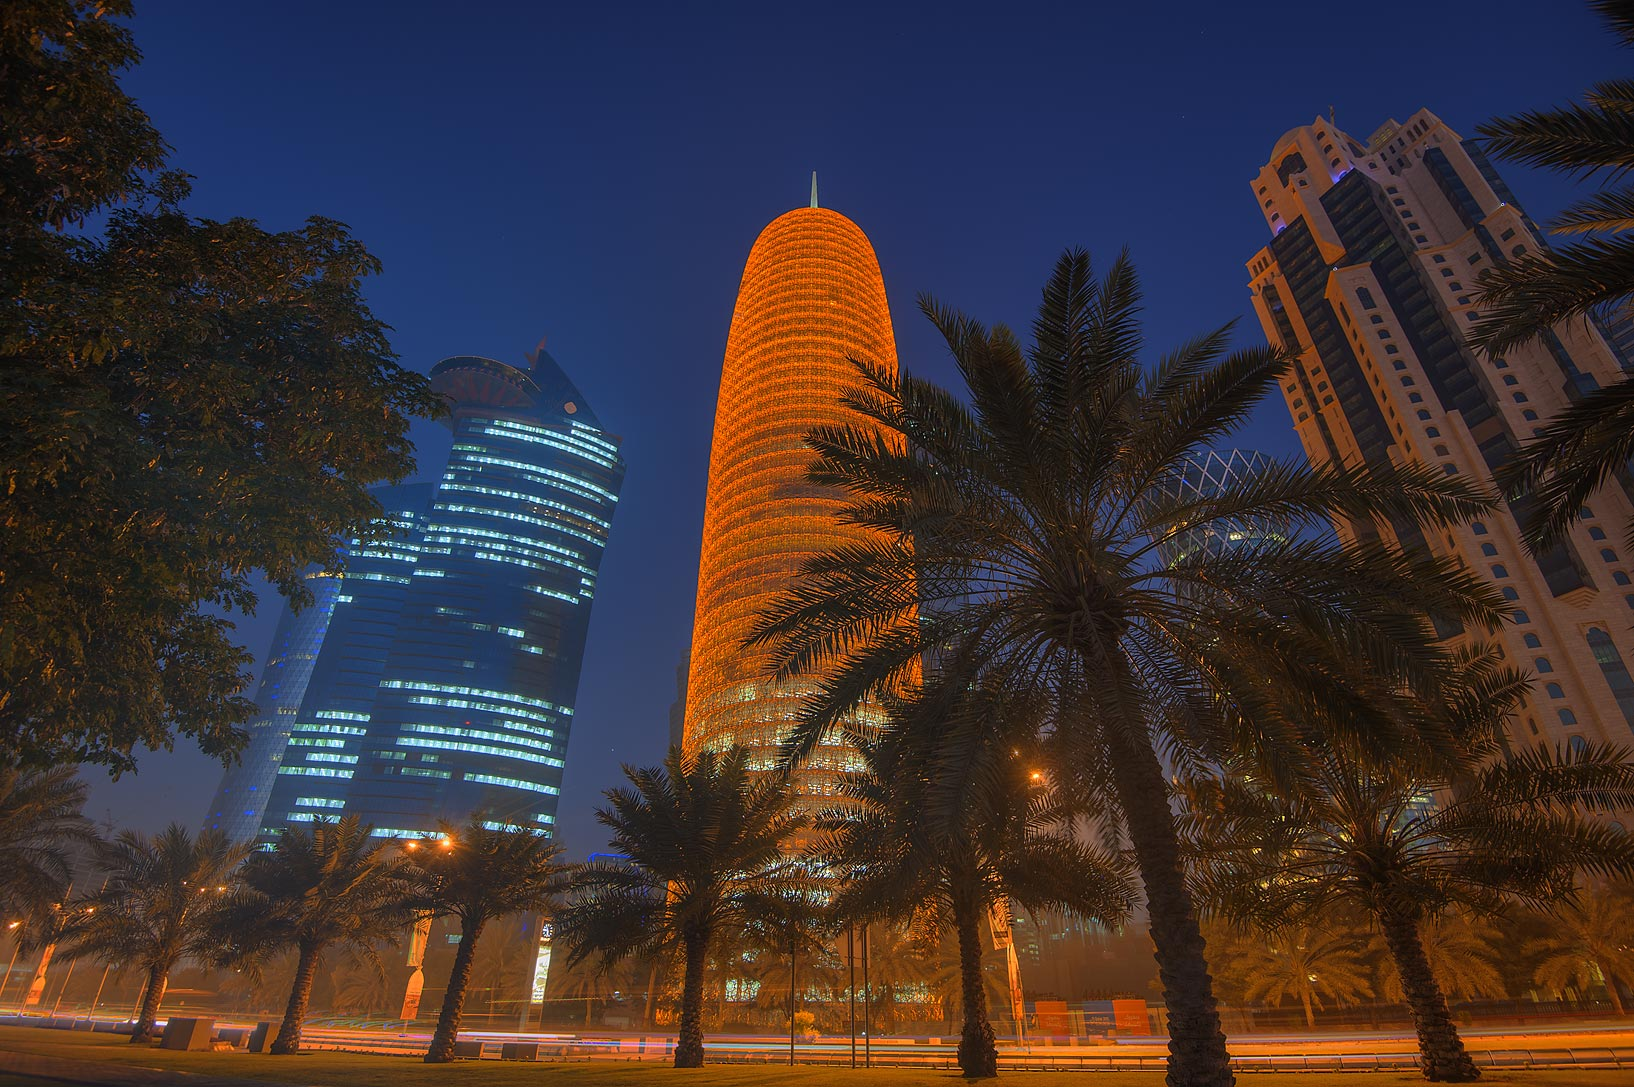 Tornado Tower from a palm alley on Corniche promenade. Doha, Qatar